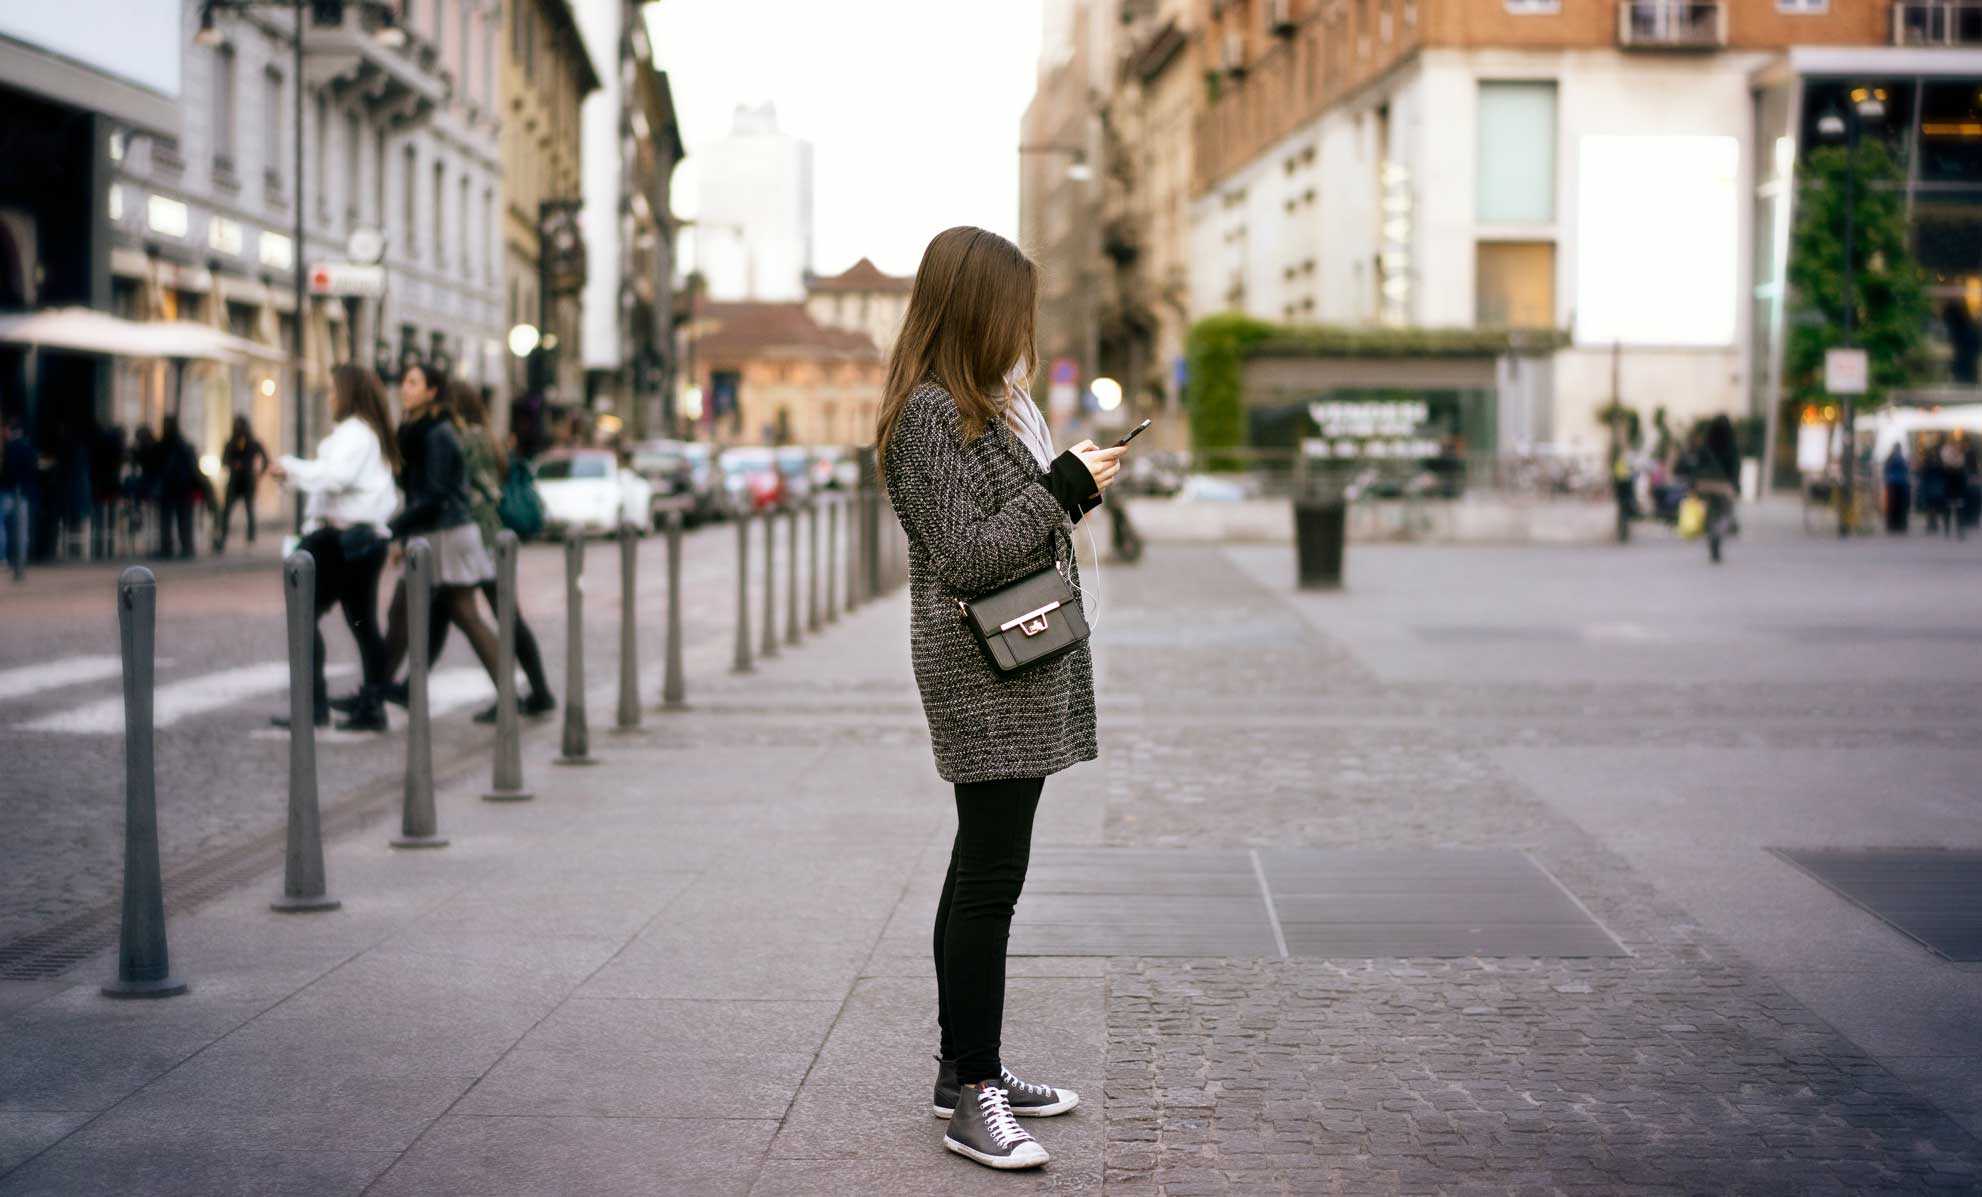 Girl standing on the street with an iphone